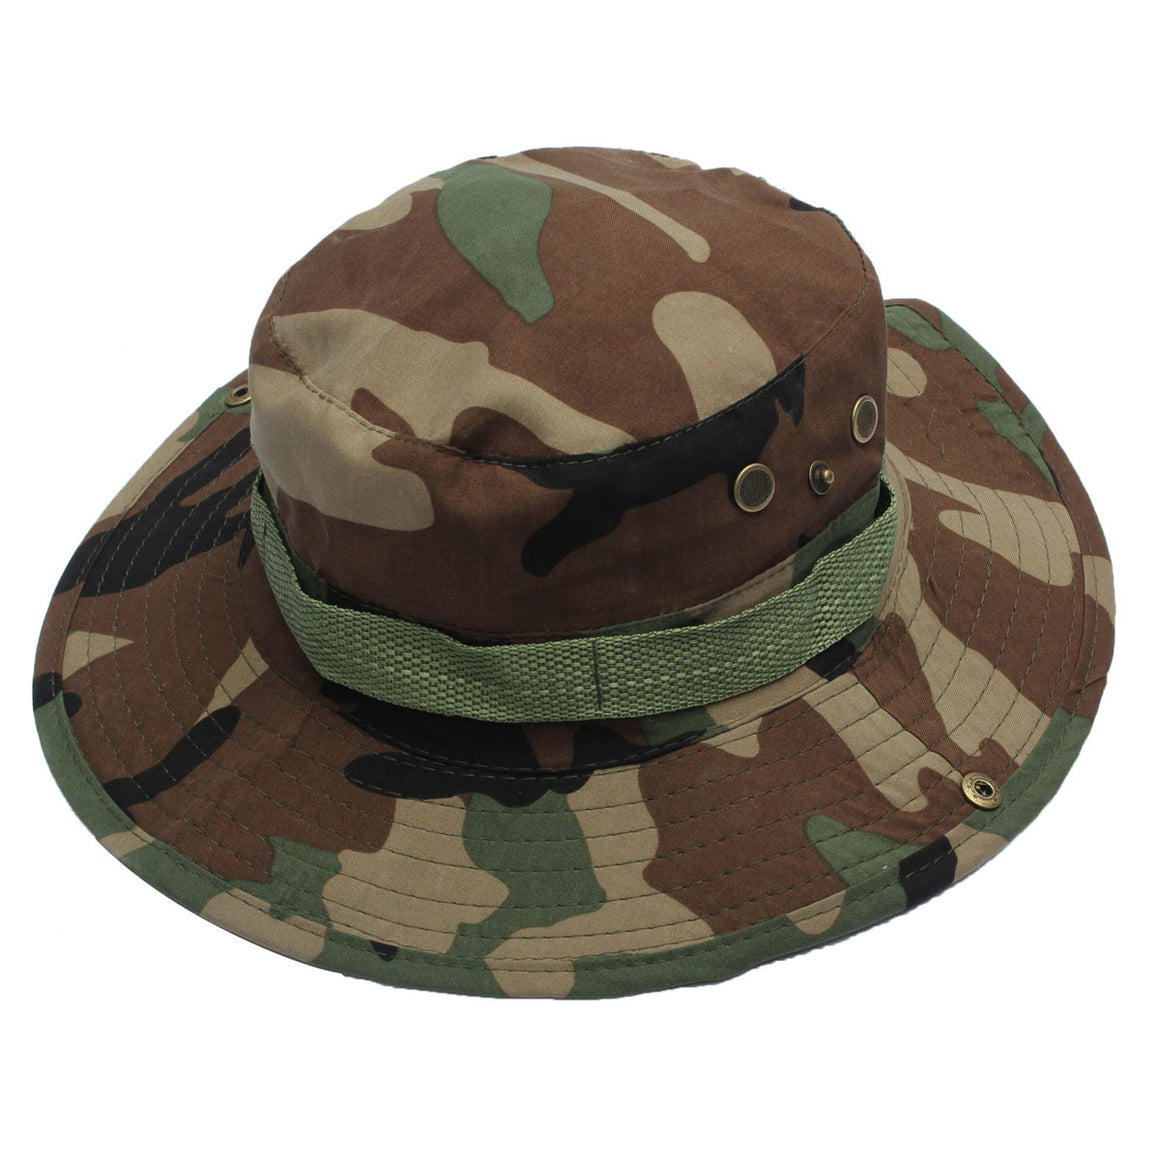 Dome  Bucket Hats Men Women Military Camo Cap Casual Bucket Camping Hiking Travel Sun Bob Fishing Hats Unisex p3872